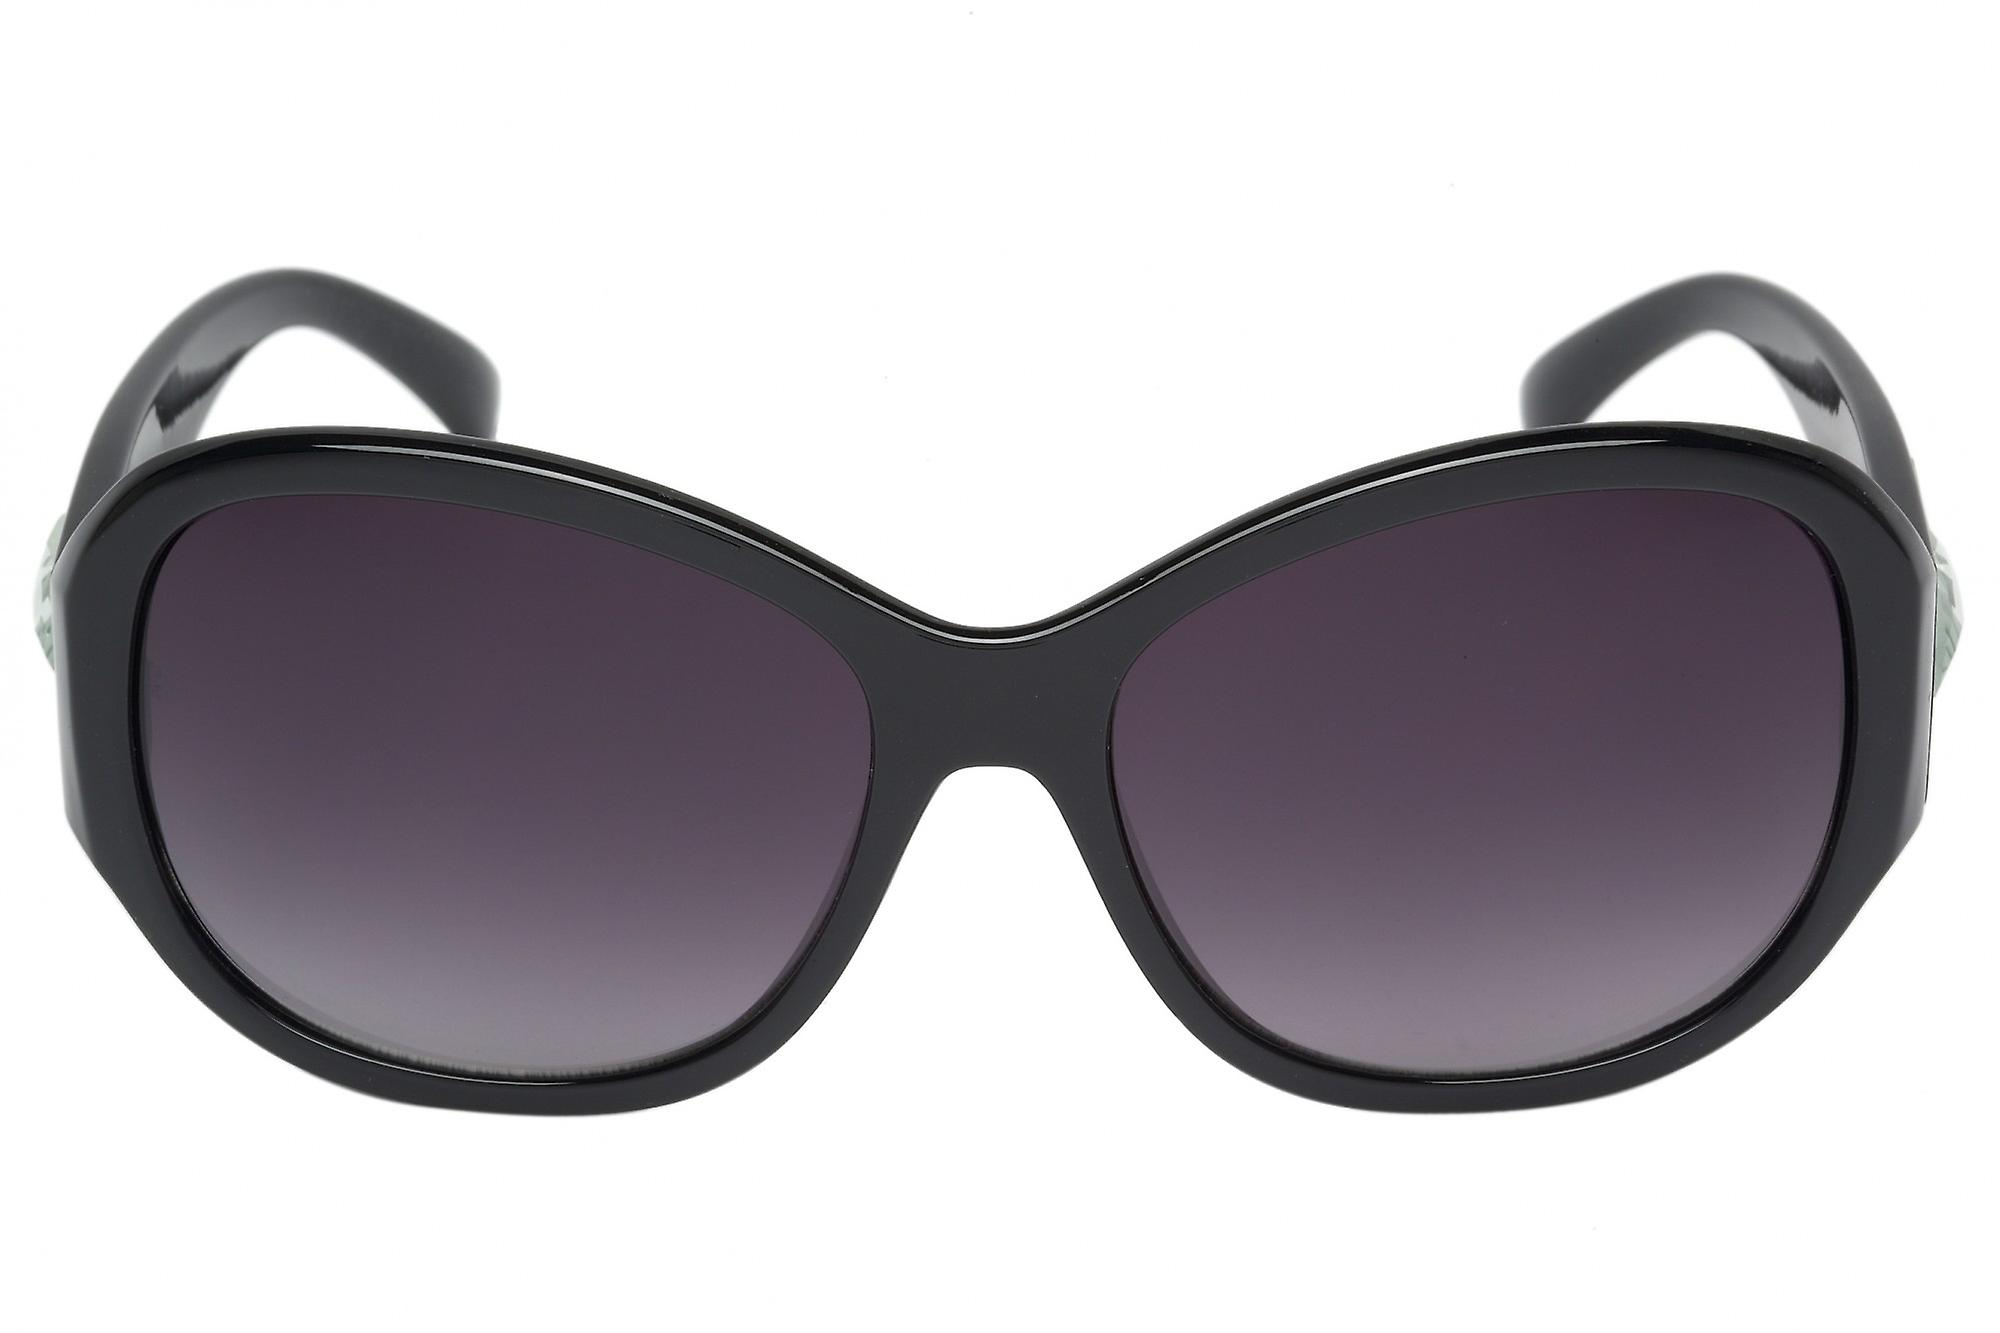 Burgmeister Ladies sunglasses Barcelona, SBM109-231